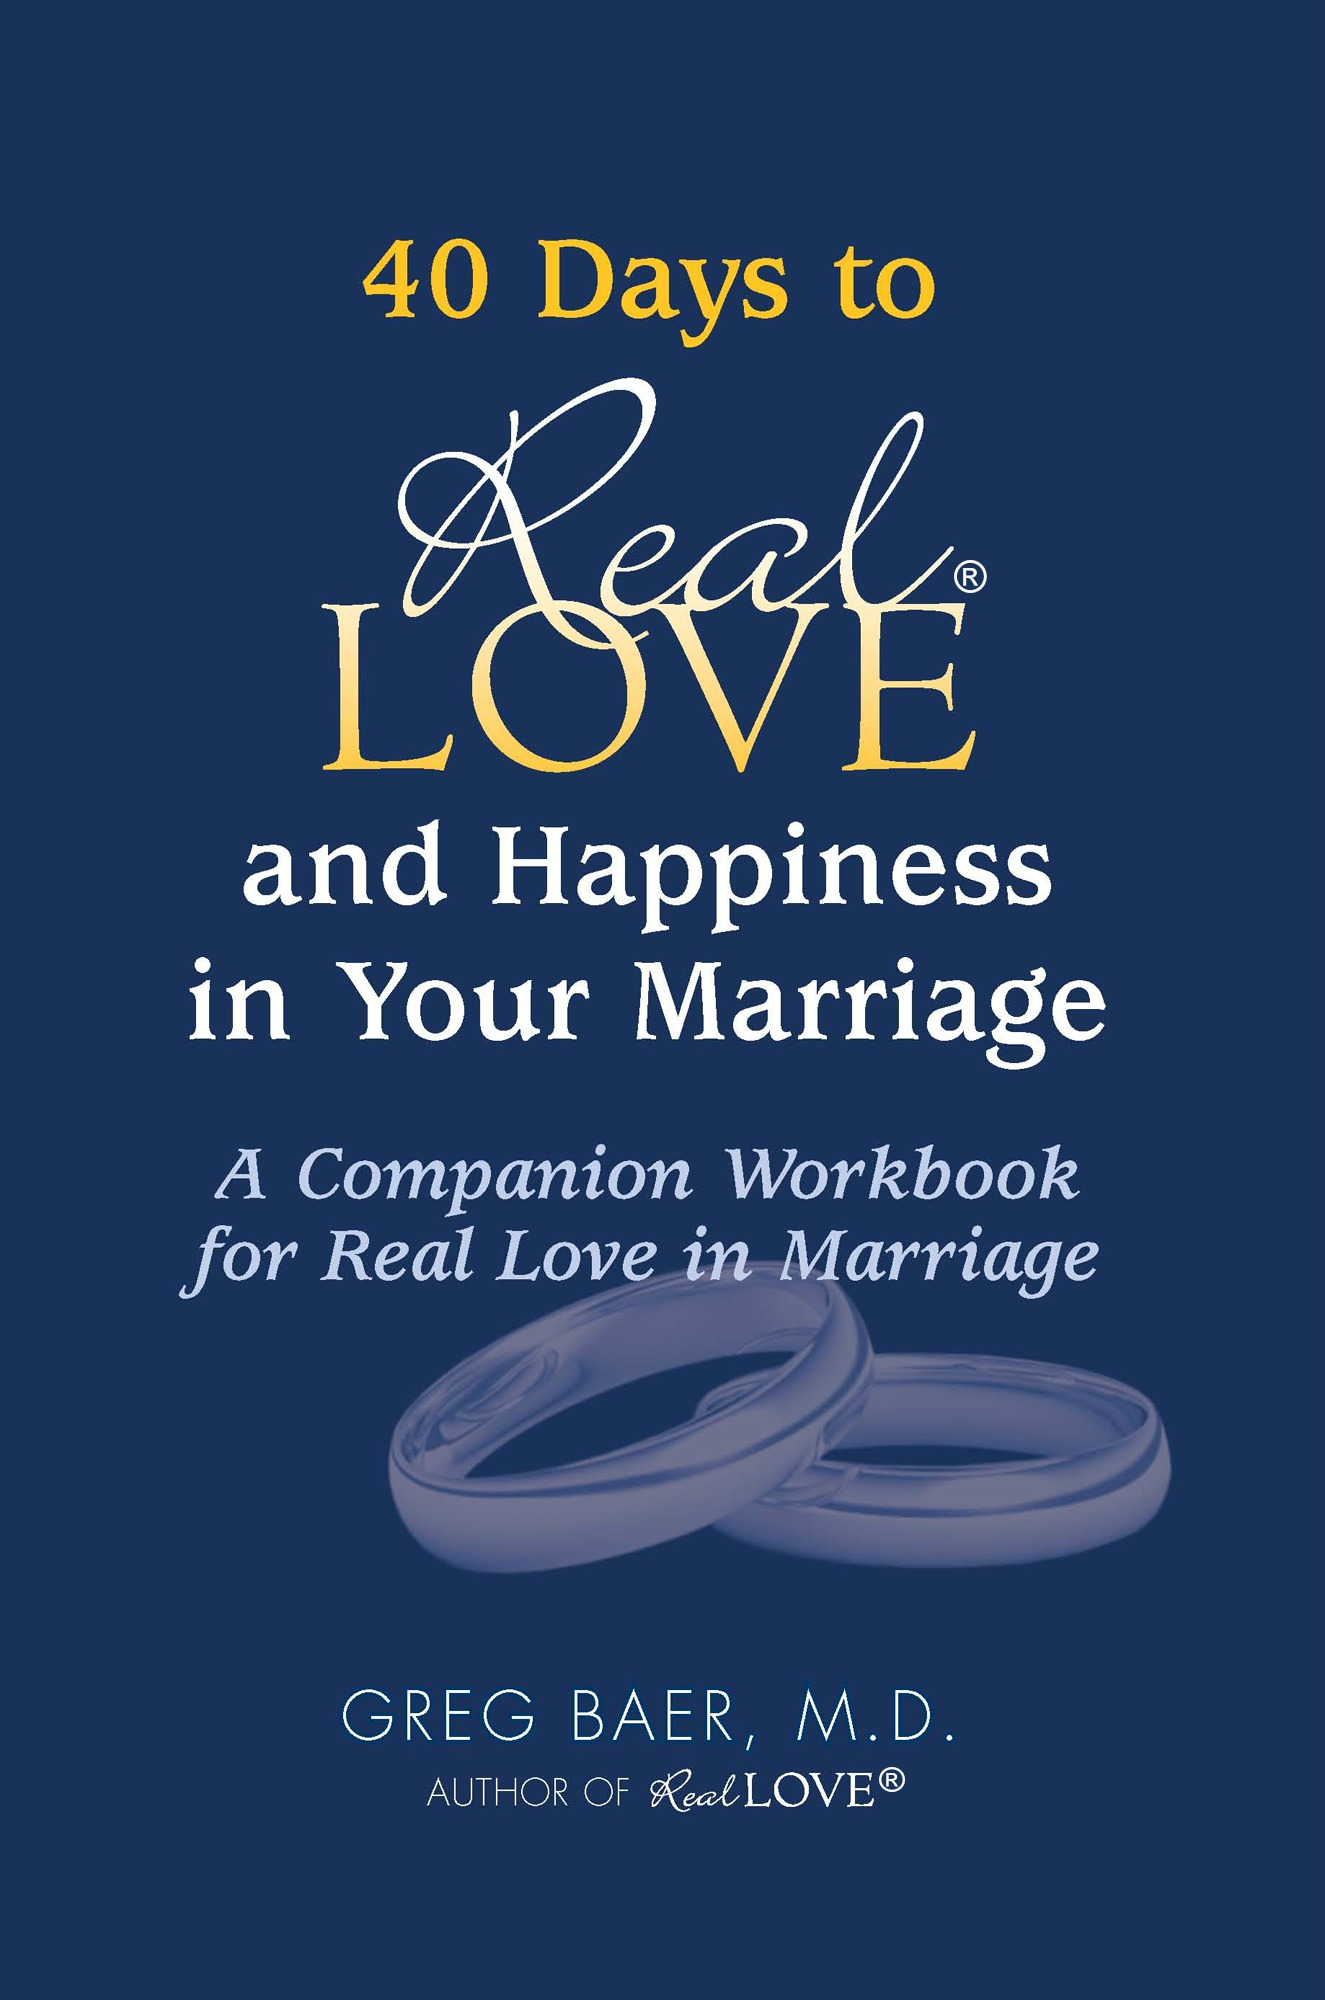 40 days to real love and happiness in your marriage  a